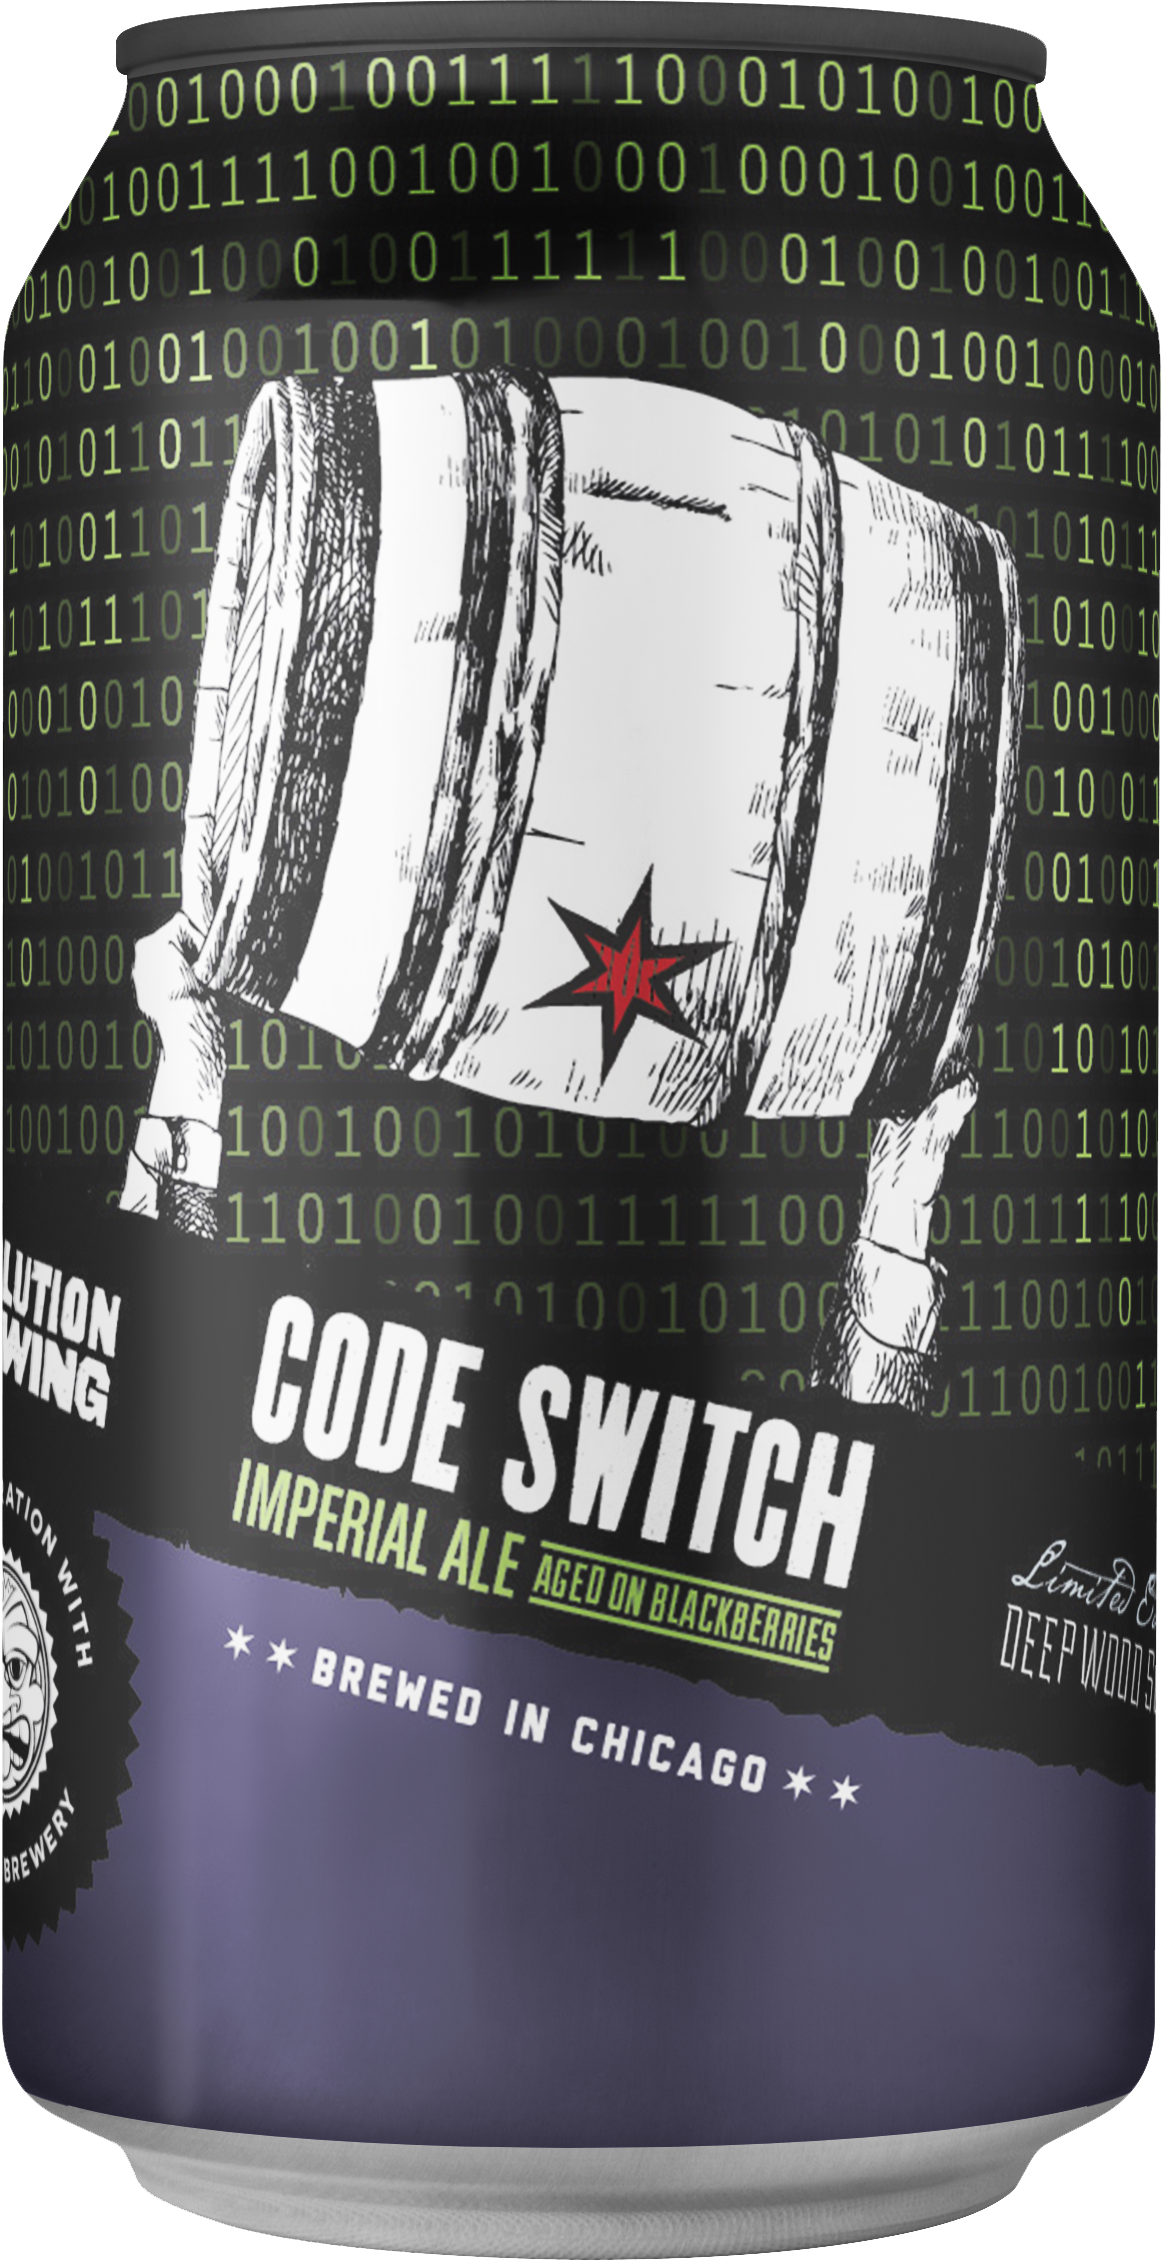 CodeSwitch.Web.png